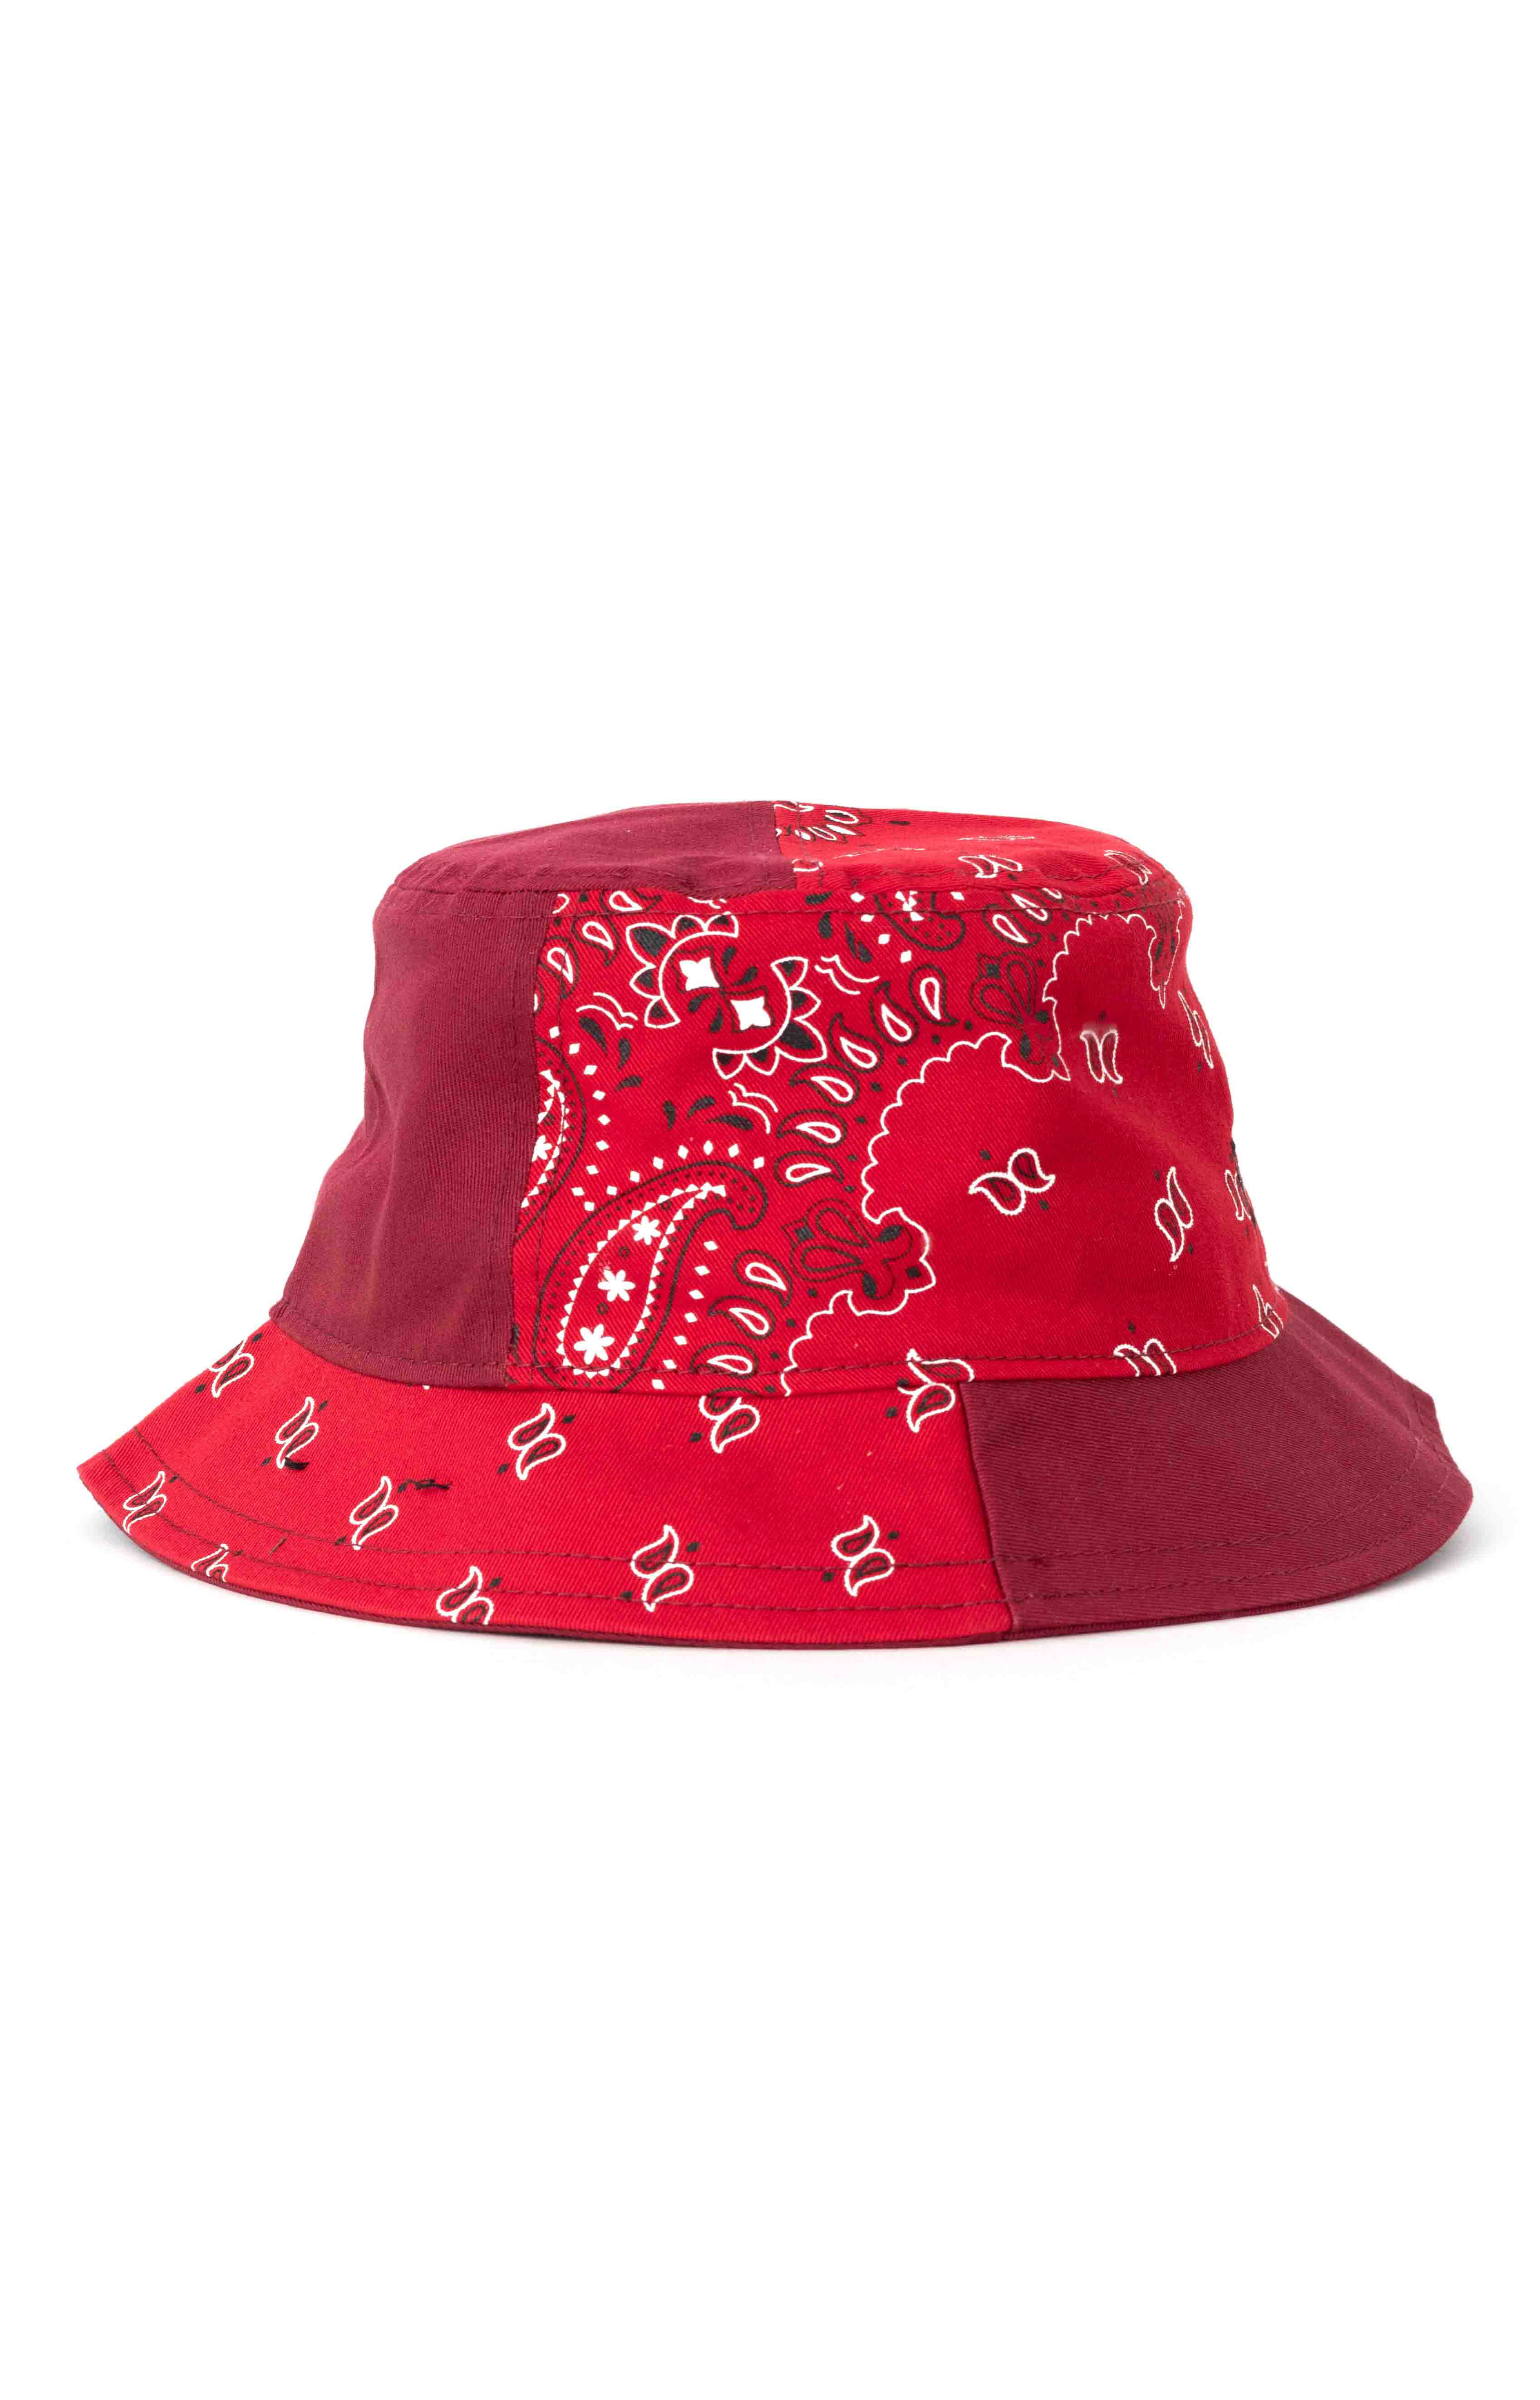 Paisley Patchwork Bucket Hat - Red 2